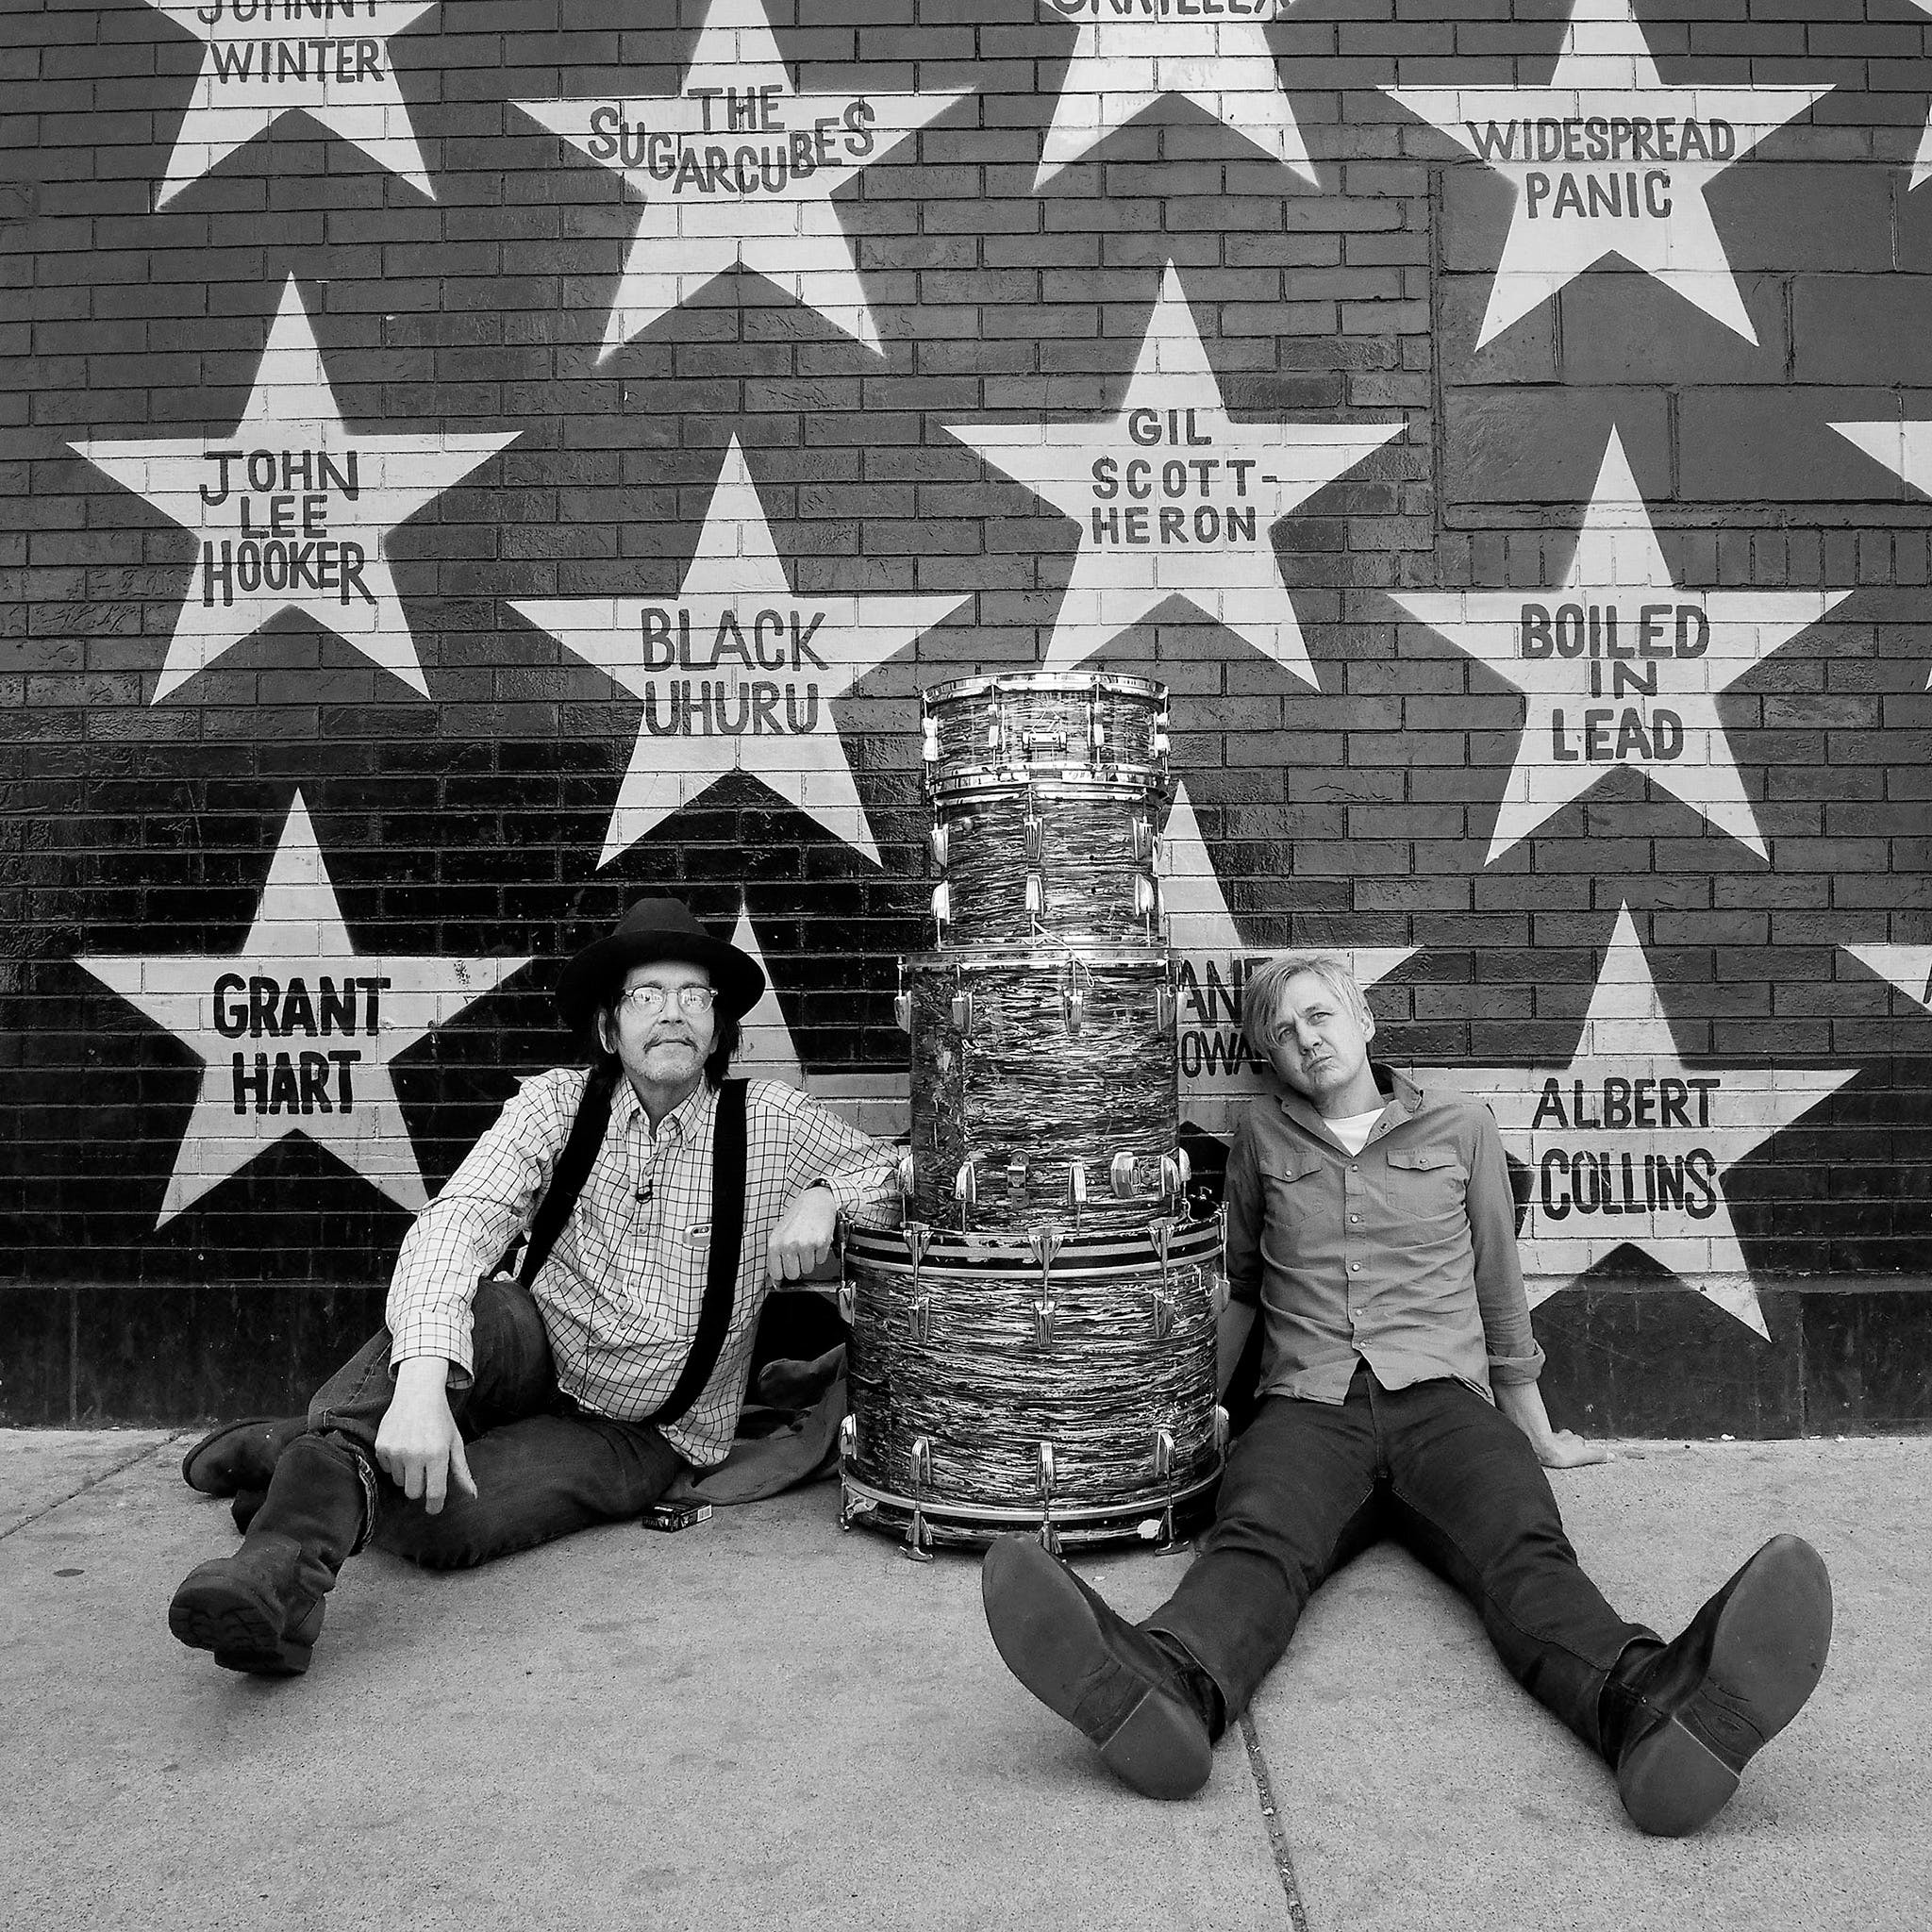 Grant Hart (left) and Chris Larson outside 7th St. Entry, Minneapolis, April 14, 2016